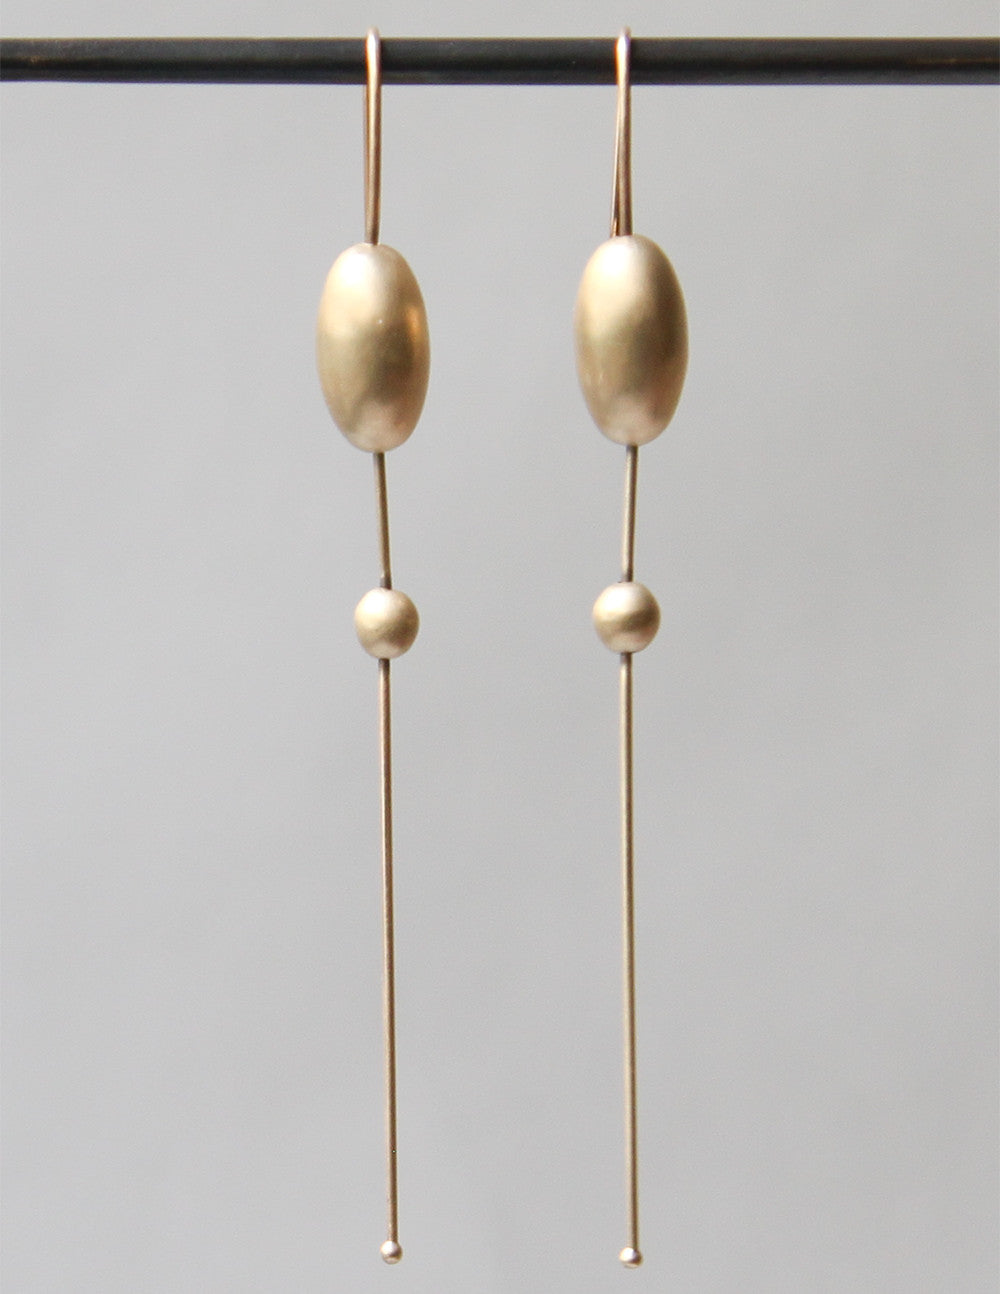 Small Simple Egg Chain Earrings